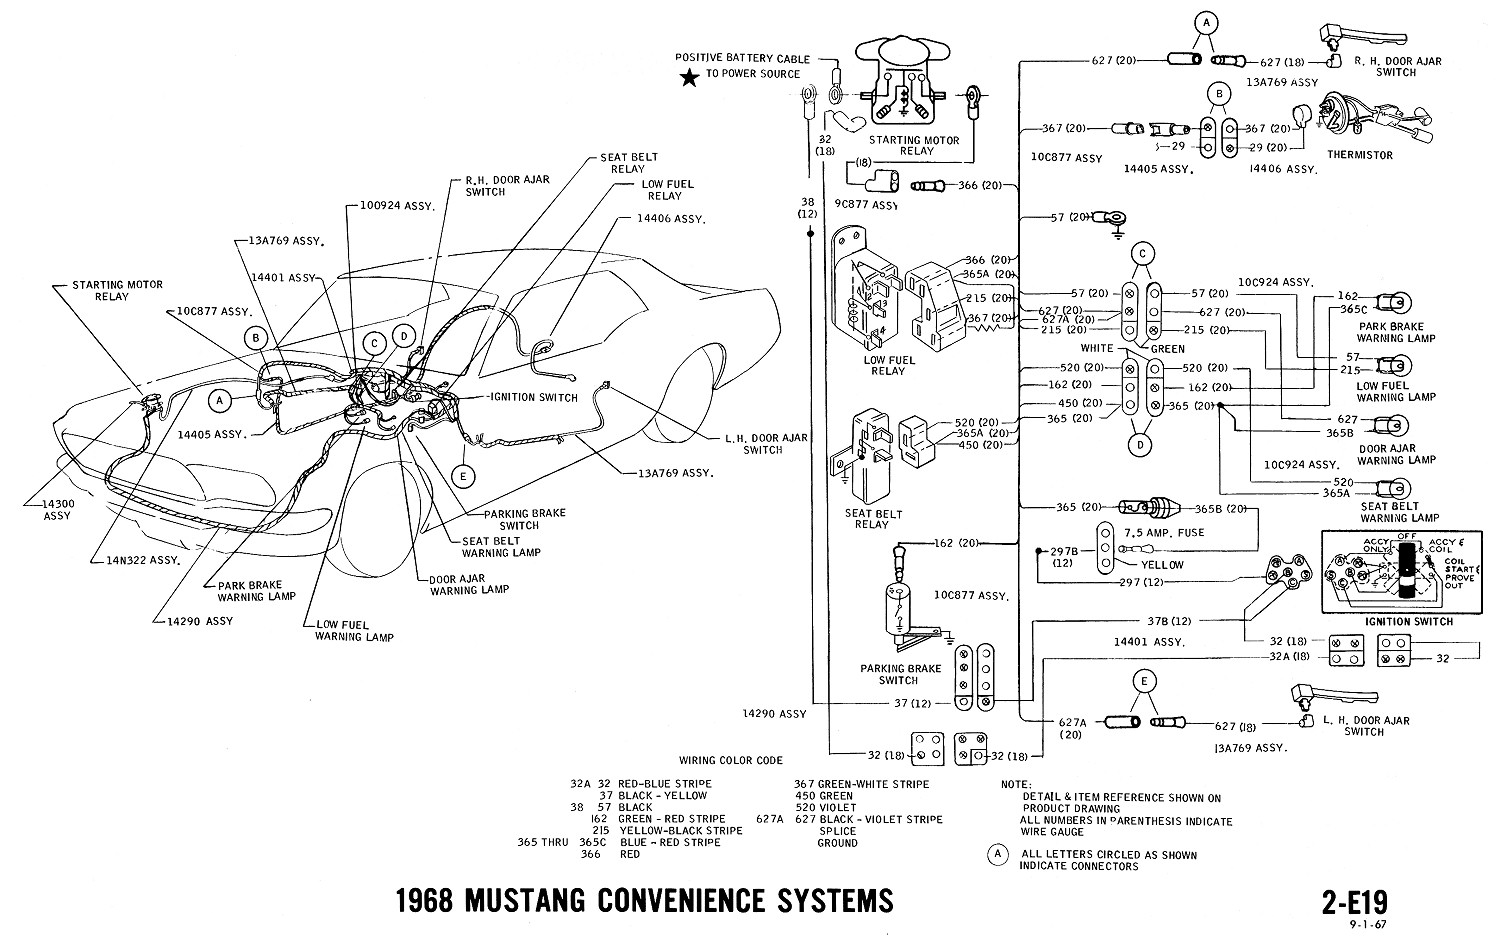 1966 mustang wiring diagram images 1968 mustang wiring diagrams and vacuum schematics average joe